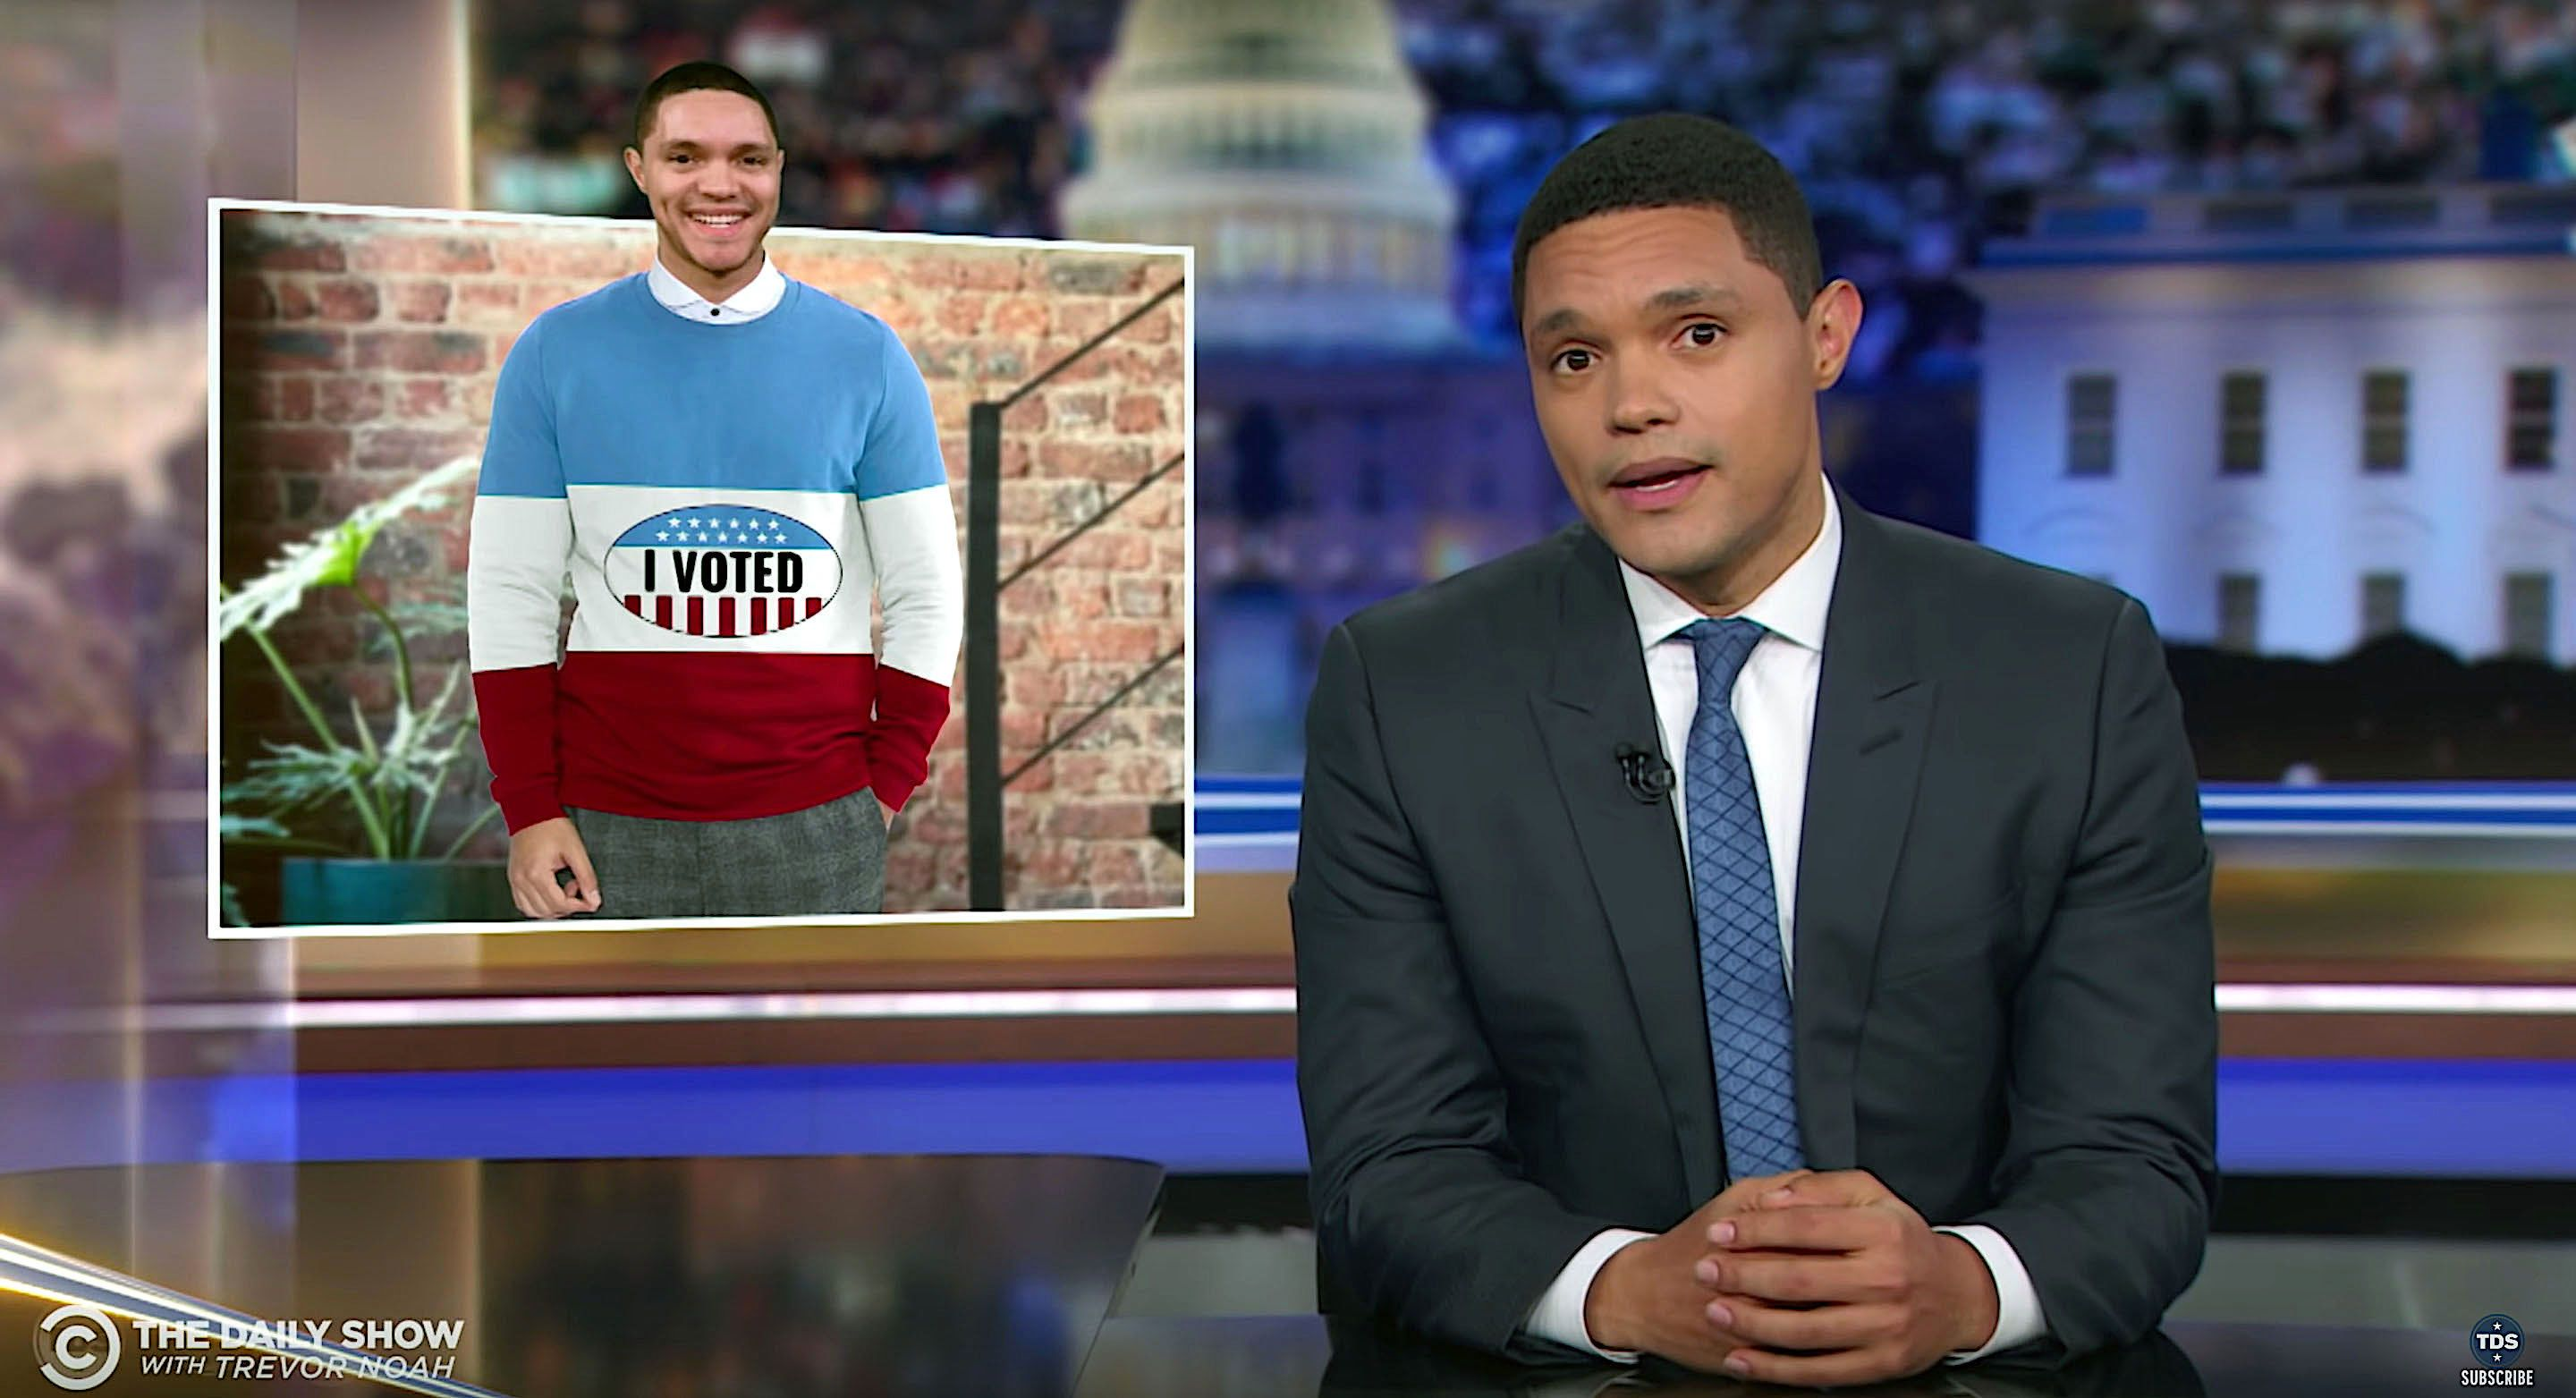 Trevor Noah says Americans need to follow Oprah's advice and vote.